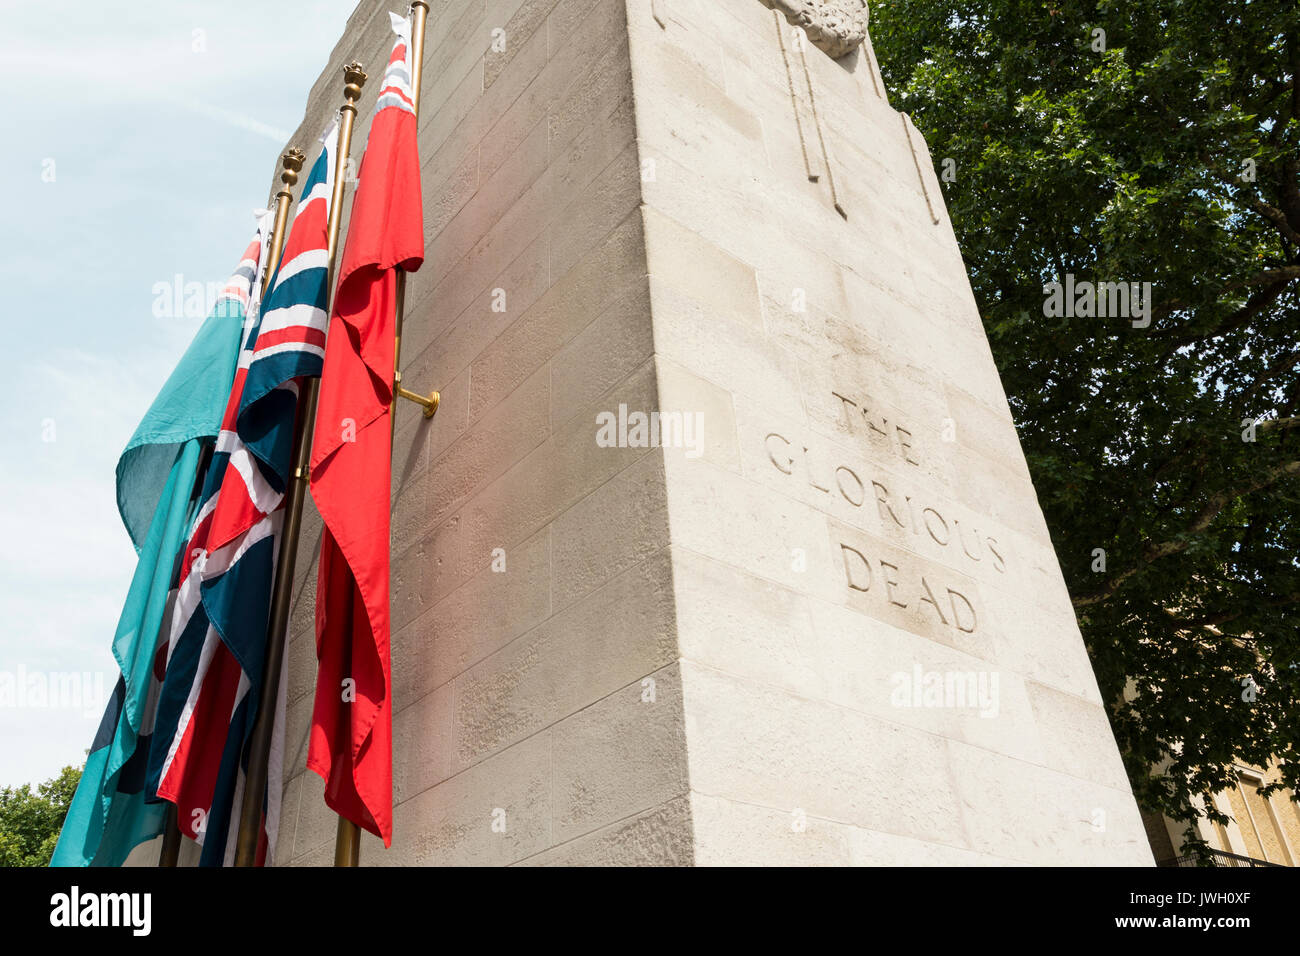 Flags flanking the sides of The Cenotaph representing the Royal Navy, the British Army, the Royal Air Force, and the Merchant Navy. - Stock Image